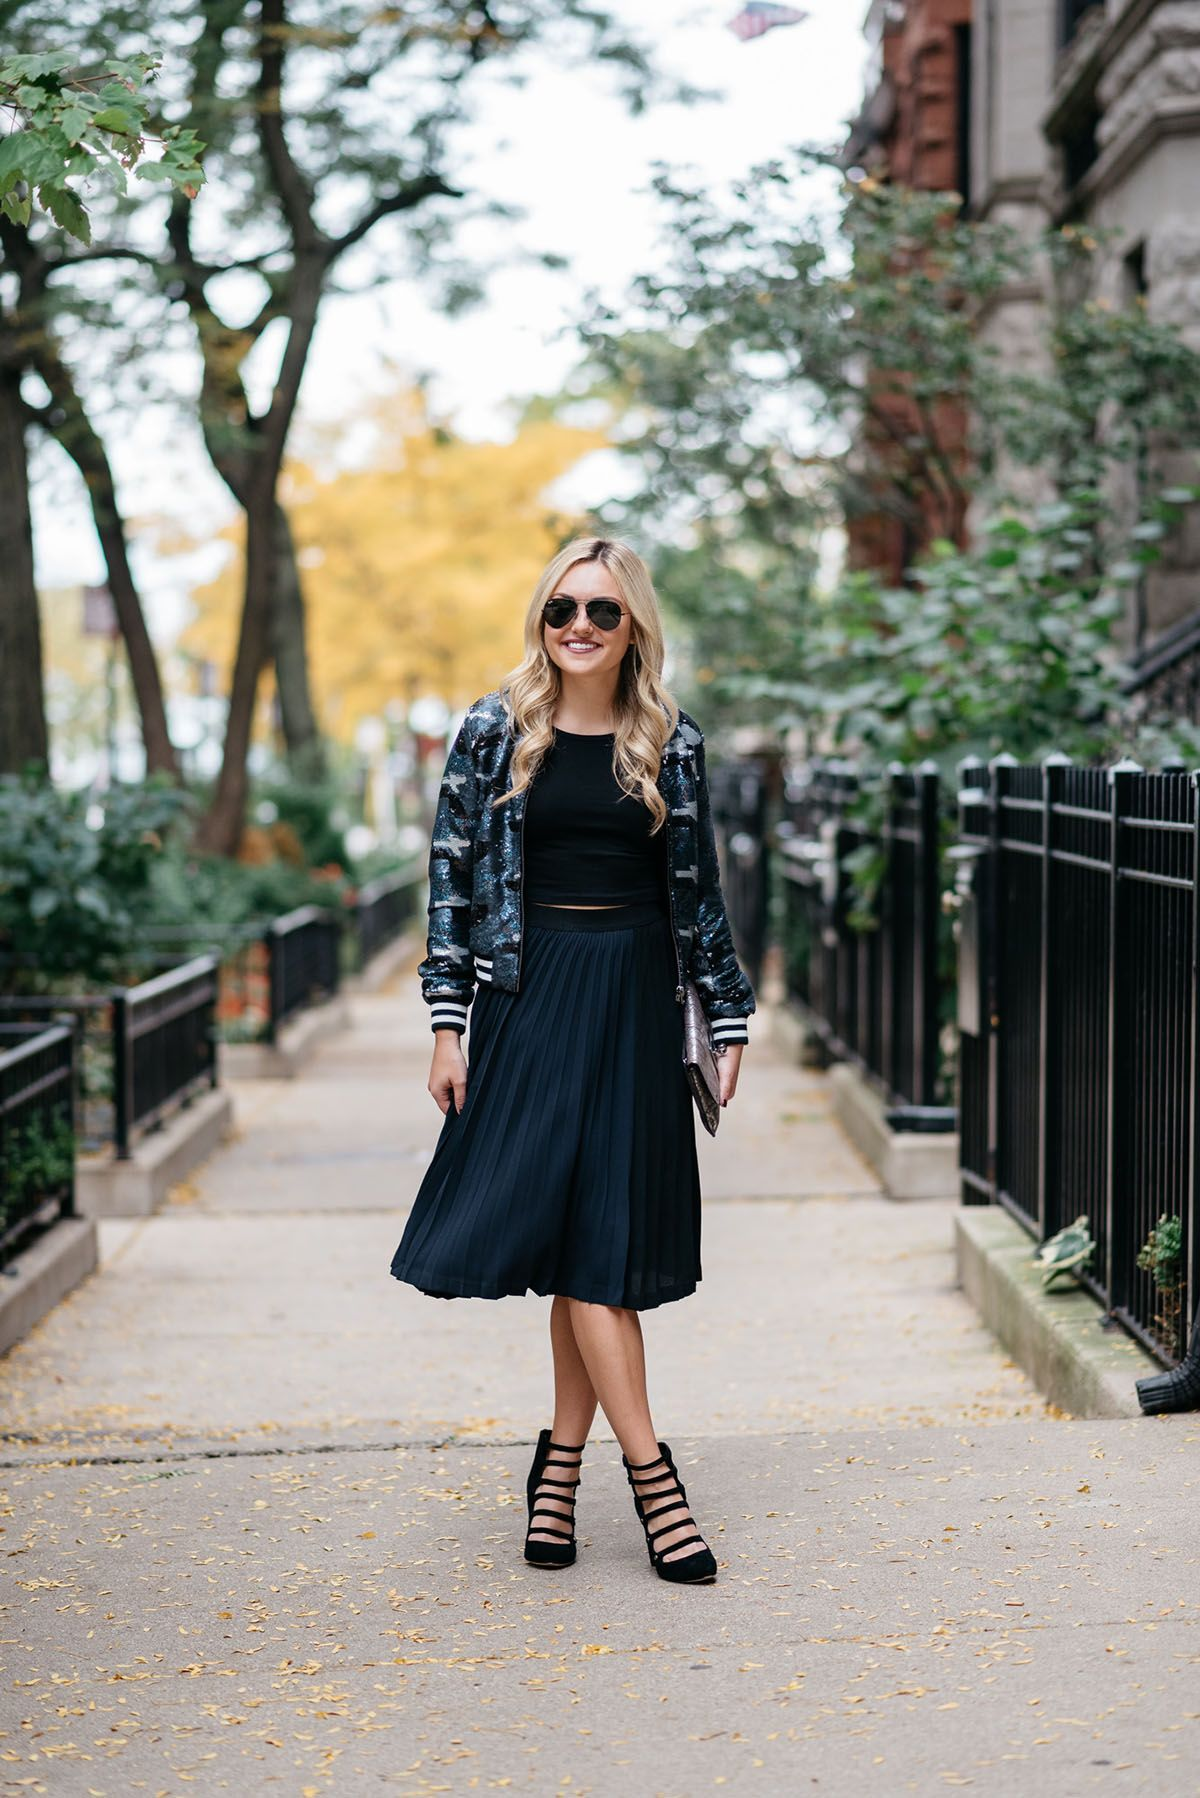 Bows & Sequins styling a sequin bomber jacket, crop top